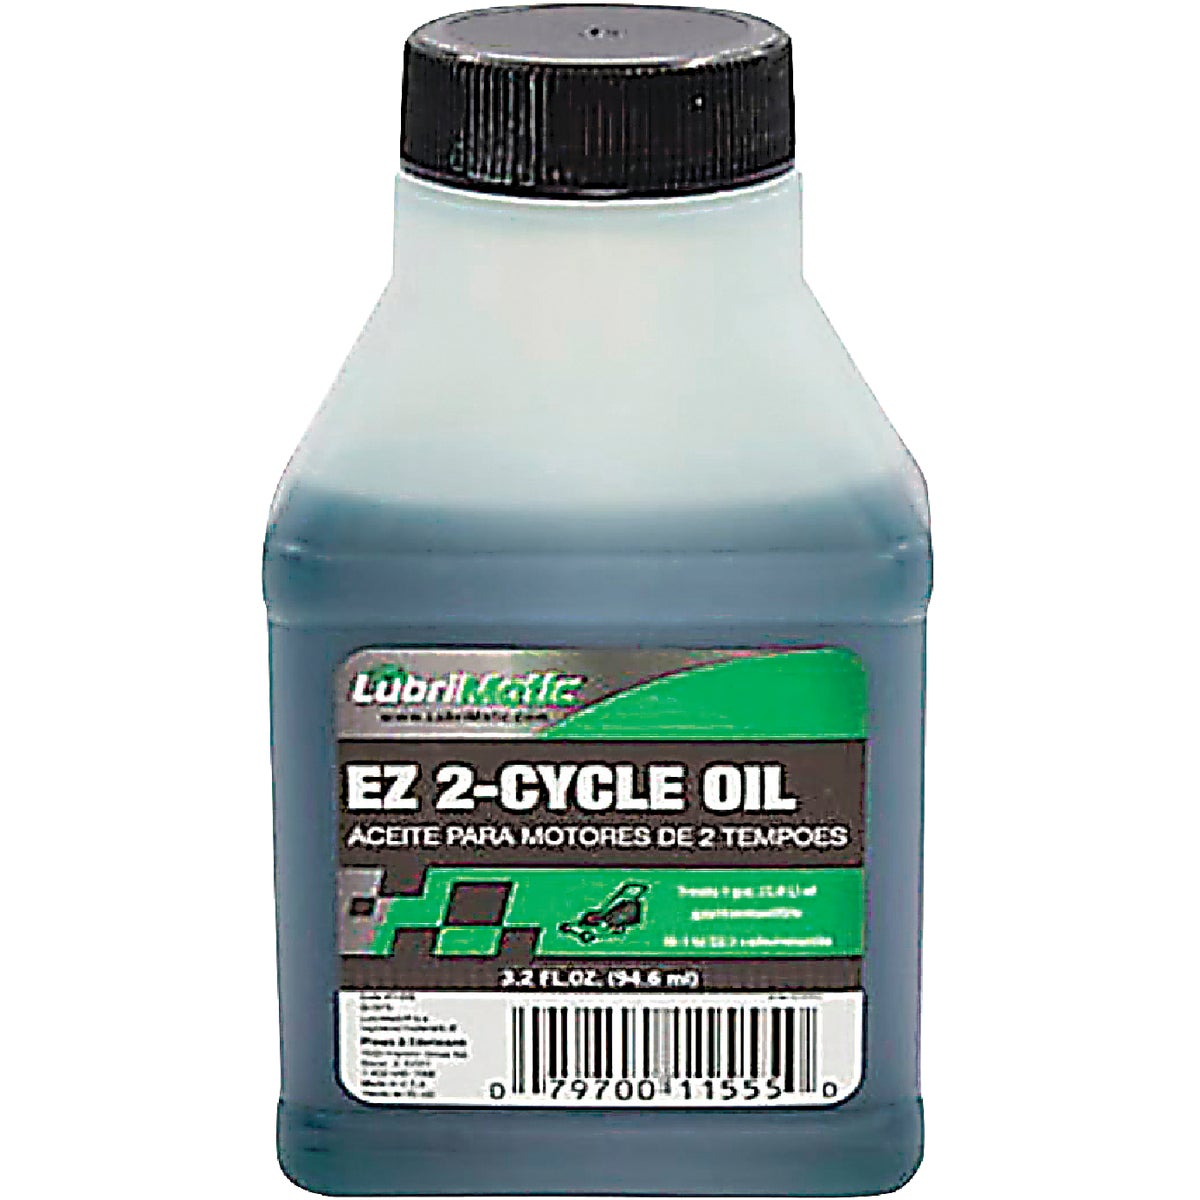 3.2OZ 2-CYCLE OIL - 11555 by Plews  Lubrimatic